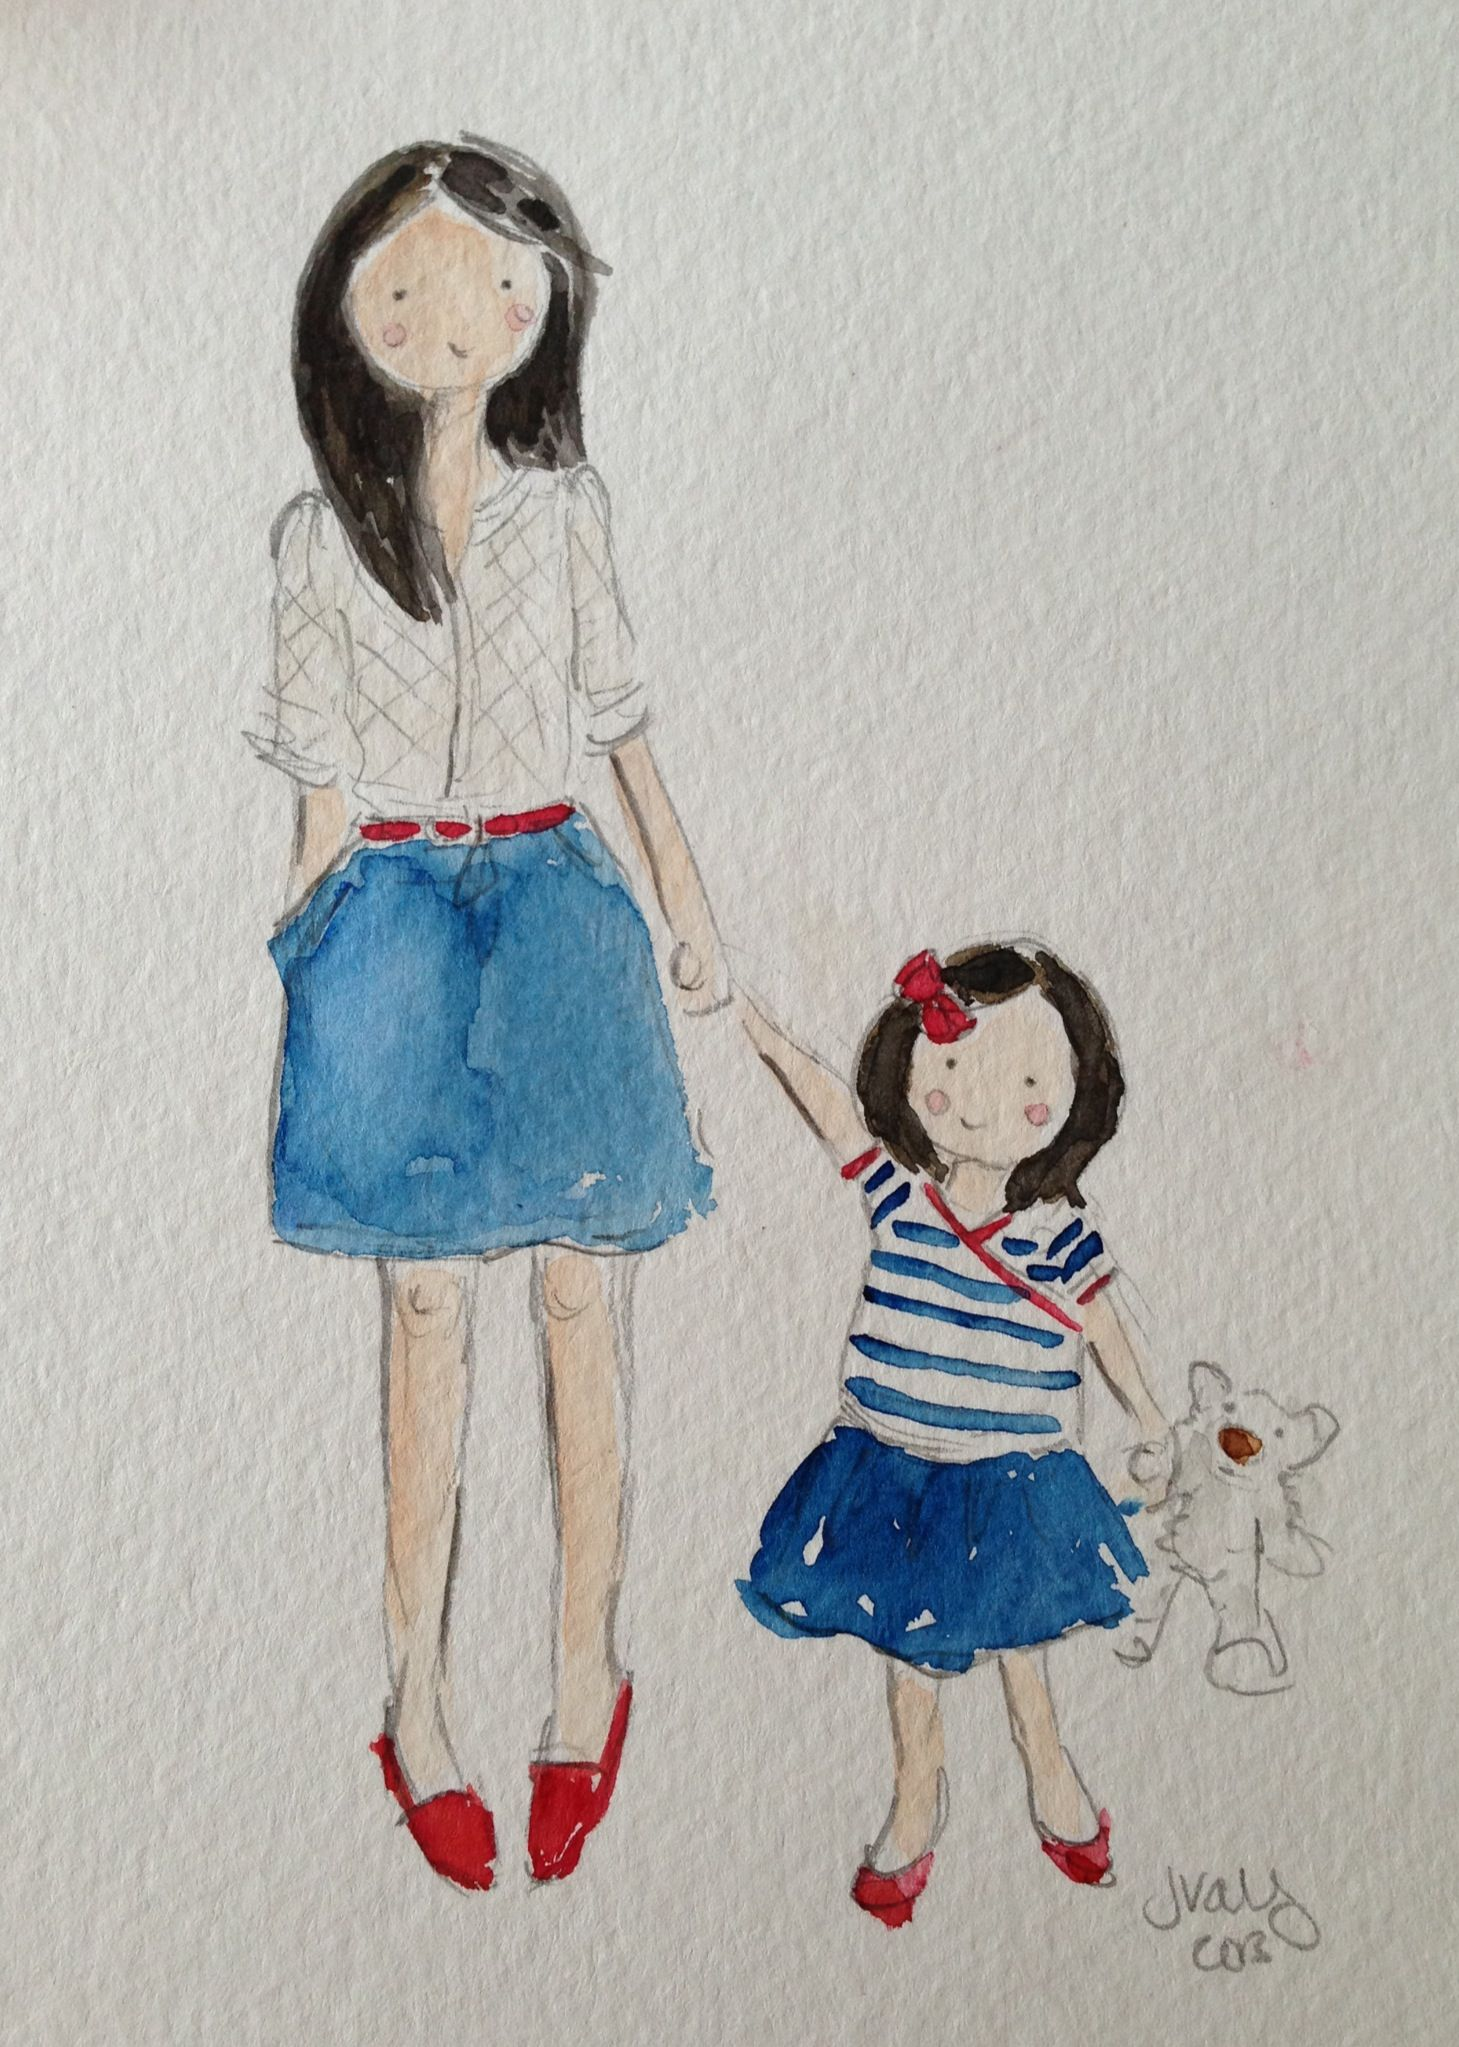 1459x2047 Pandoraloves This Watercolor Painting Of A Mom And Daughter In